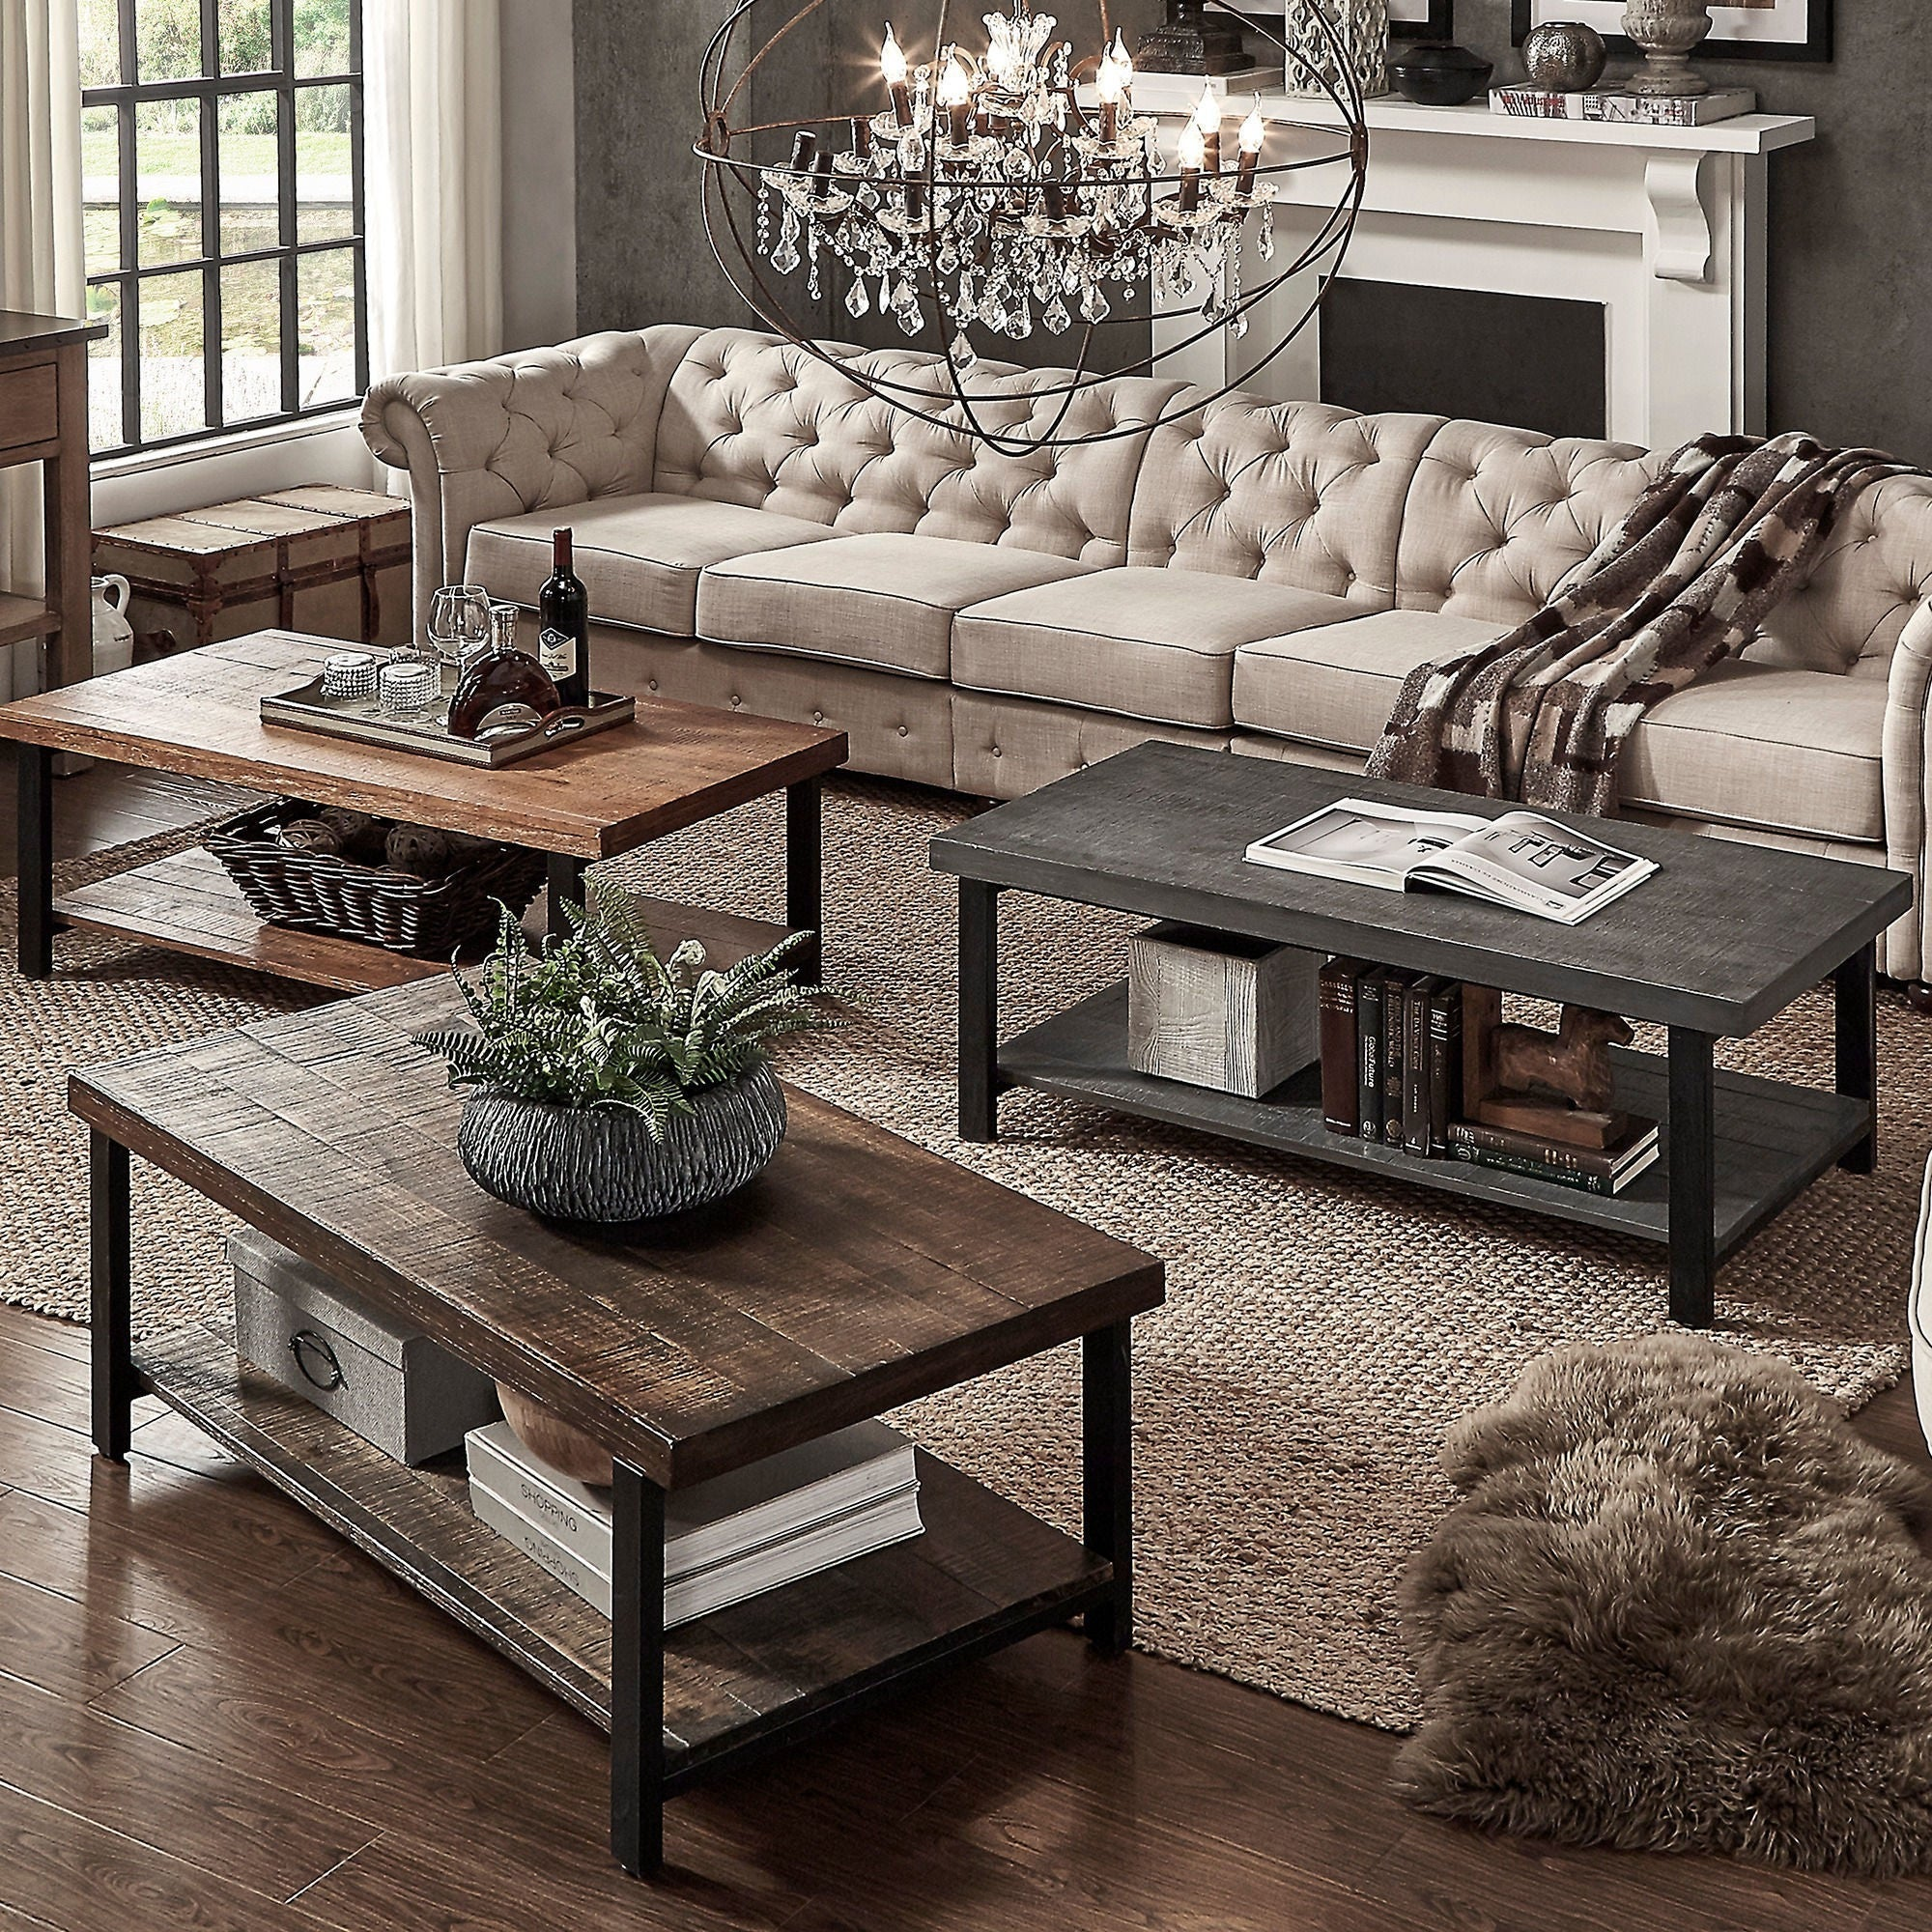 Young Industrial Coffee Table: Shop Cyra Industrial Reclaimed Rectangular Coffee Table By